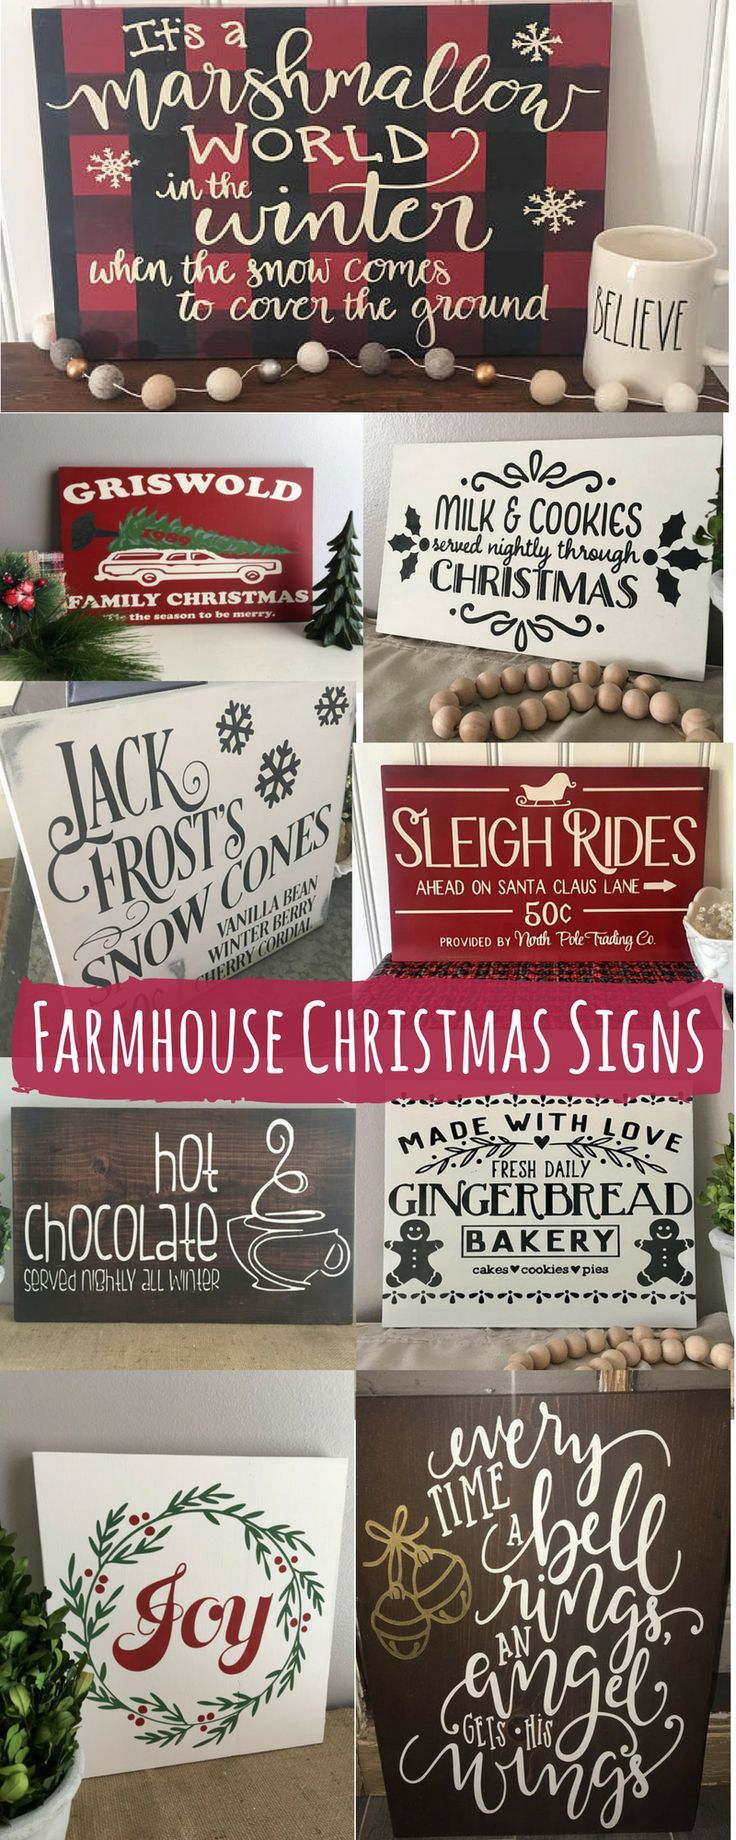 I NEED these signs in my life! I love having Christmas signs on my mantle. These are some of my favorite that I have found! #commissionlink #Christmas #Christmasdecor #Christmastime #winter #homedecor #homedesign #homedecoration #homedecorideas #homesweethome #homestyle #country #farmhouse #farmhousestyle #farmhousedecor #rusticdecor